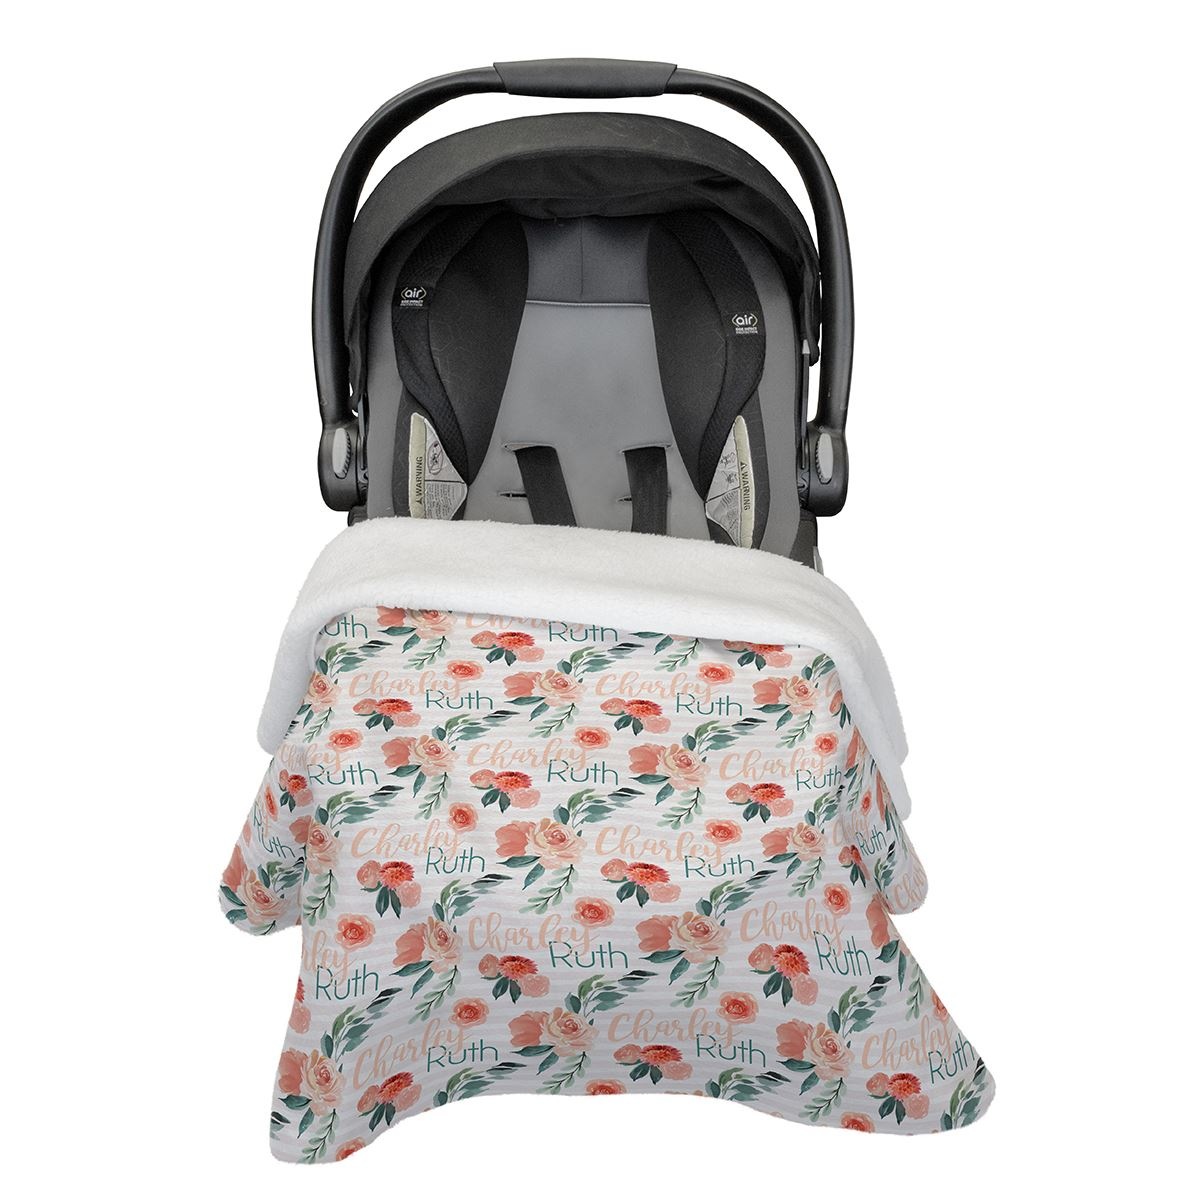 Charley Ruth | Car Seat Blanket